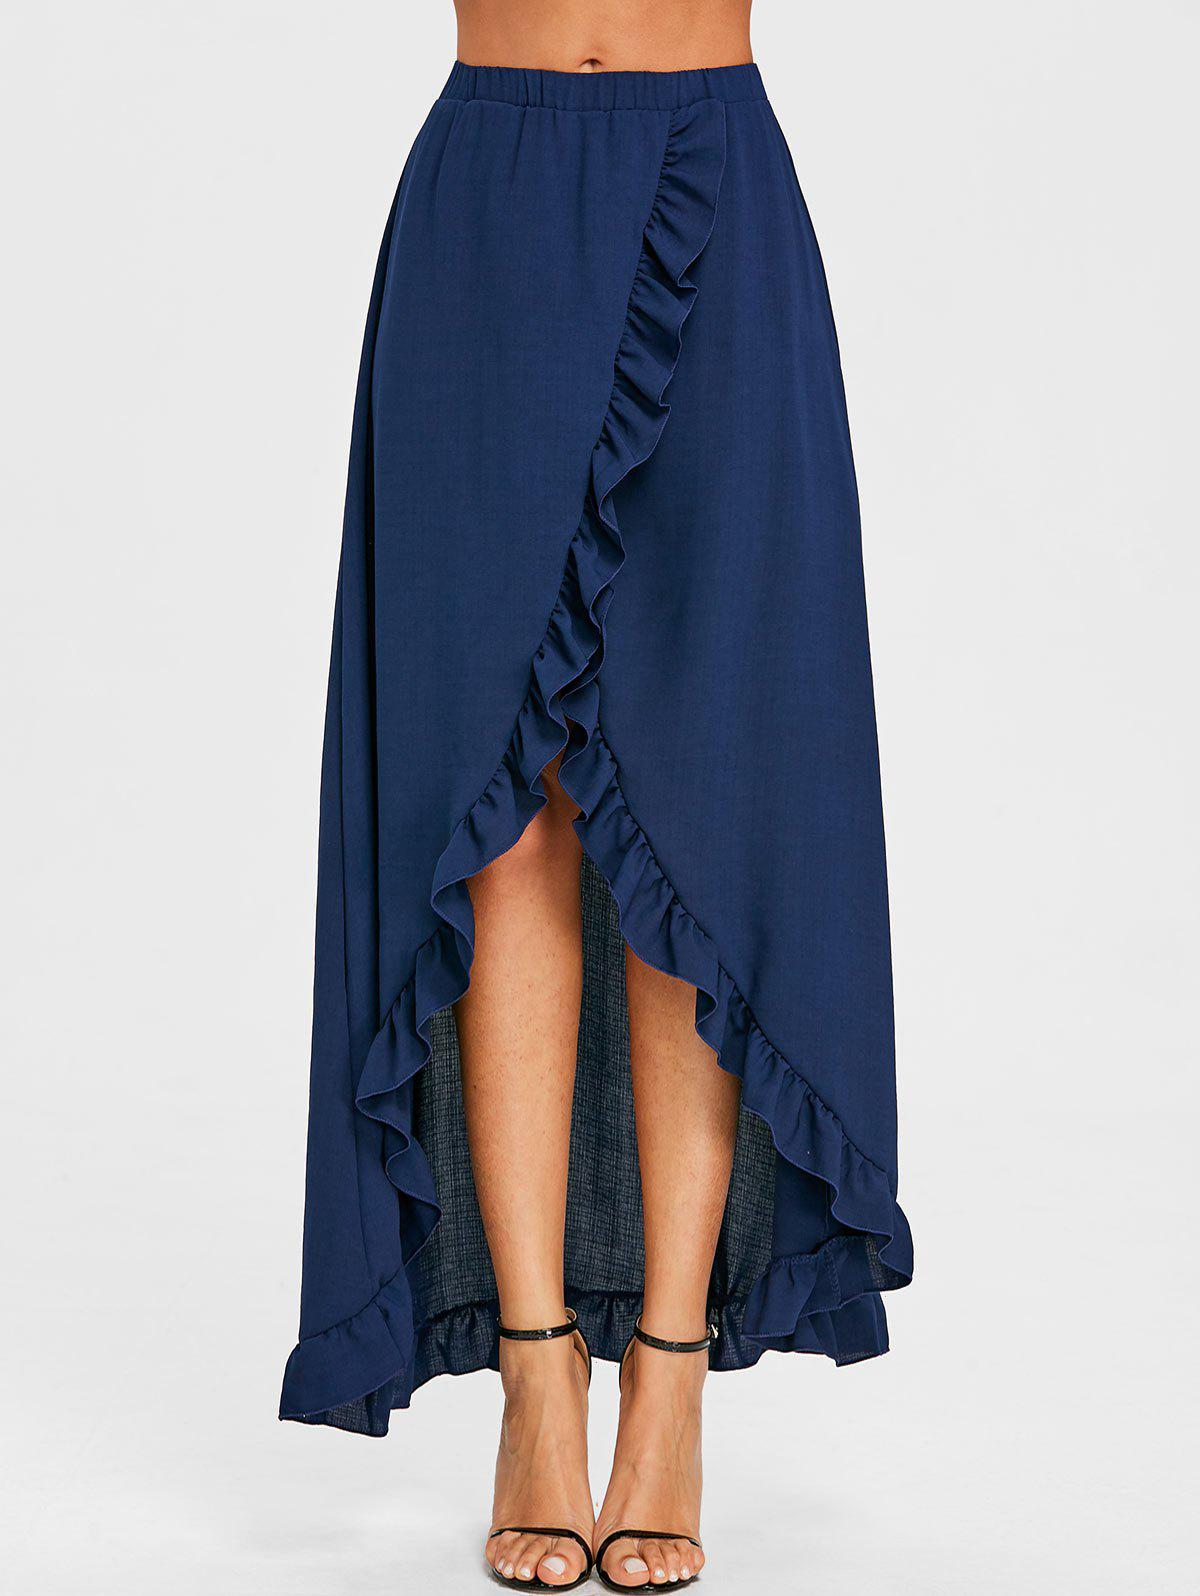 Ruffle Slit Maxi Skirt - PURPLISH BLUE S